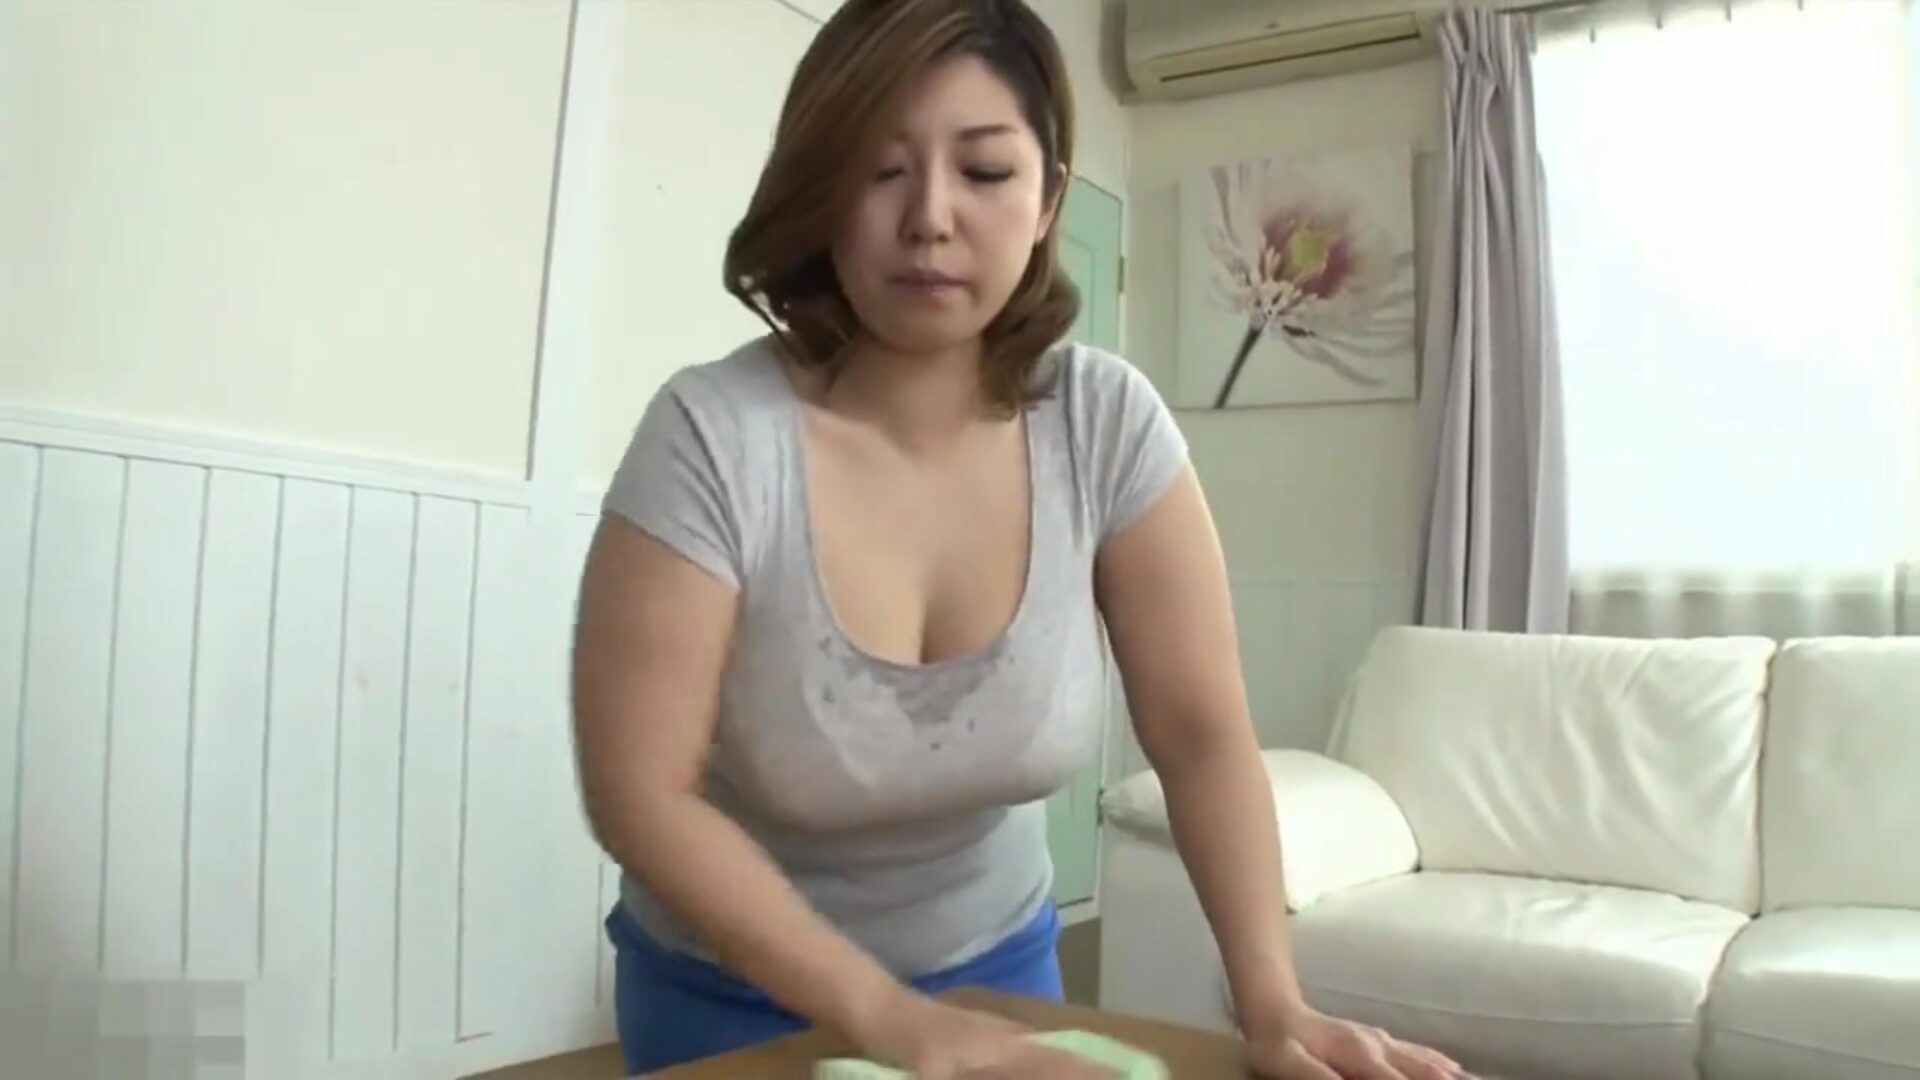 Japanese mama caught by surprise by sonny when cleaning Japanese step mom busy cleaning when step son loses control and compels himself on her busty perspired assets